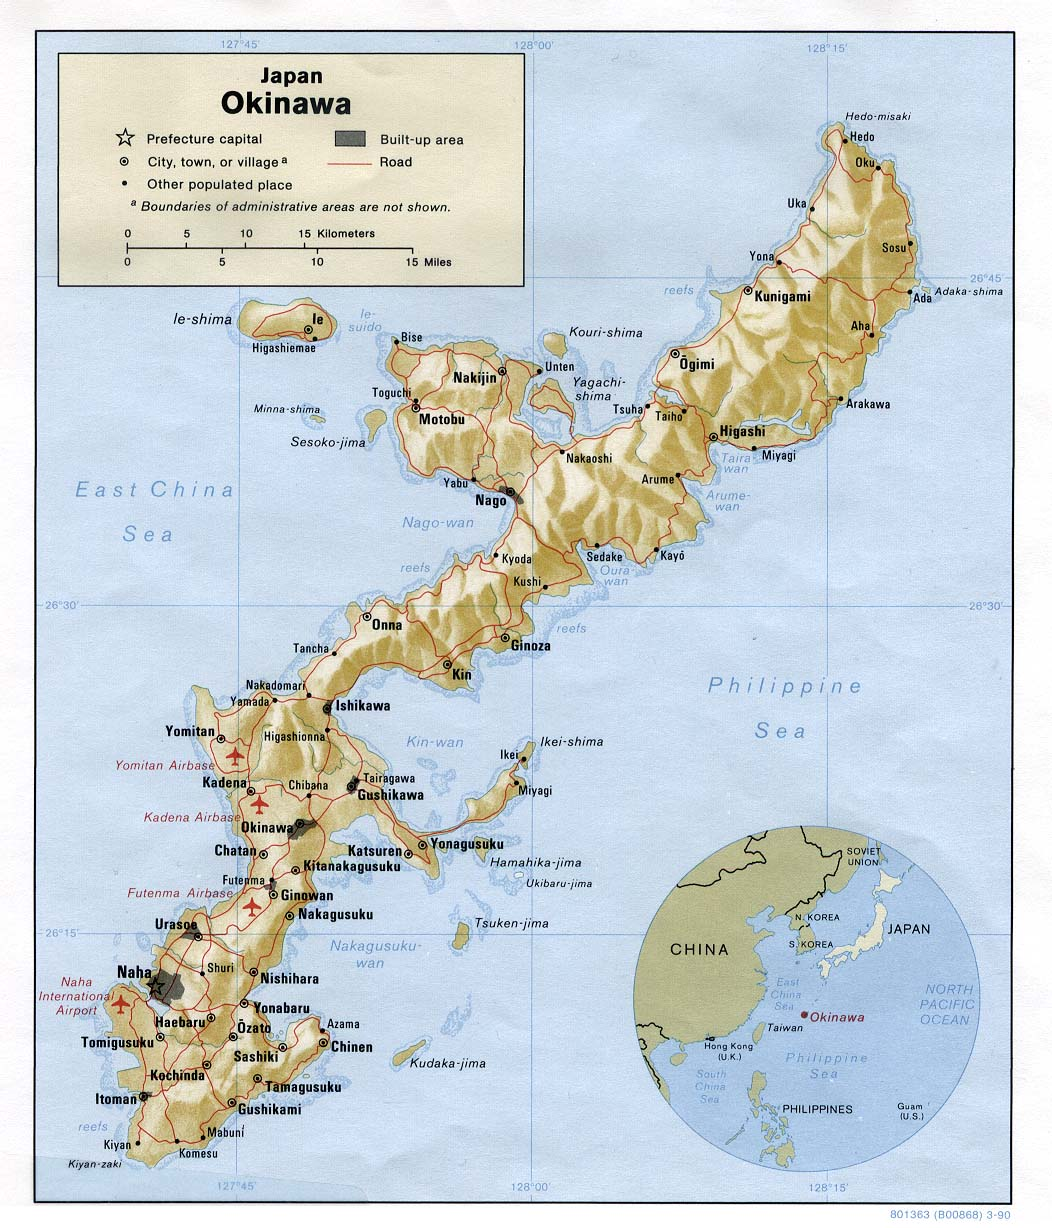 Okinawa_relief_Map_1990